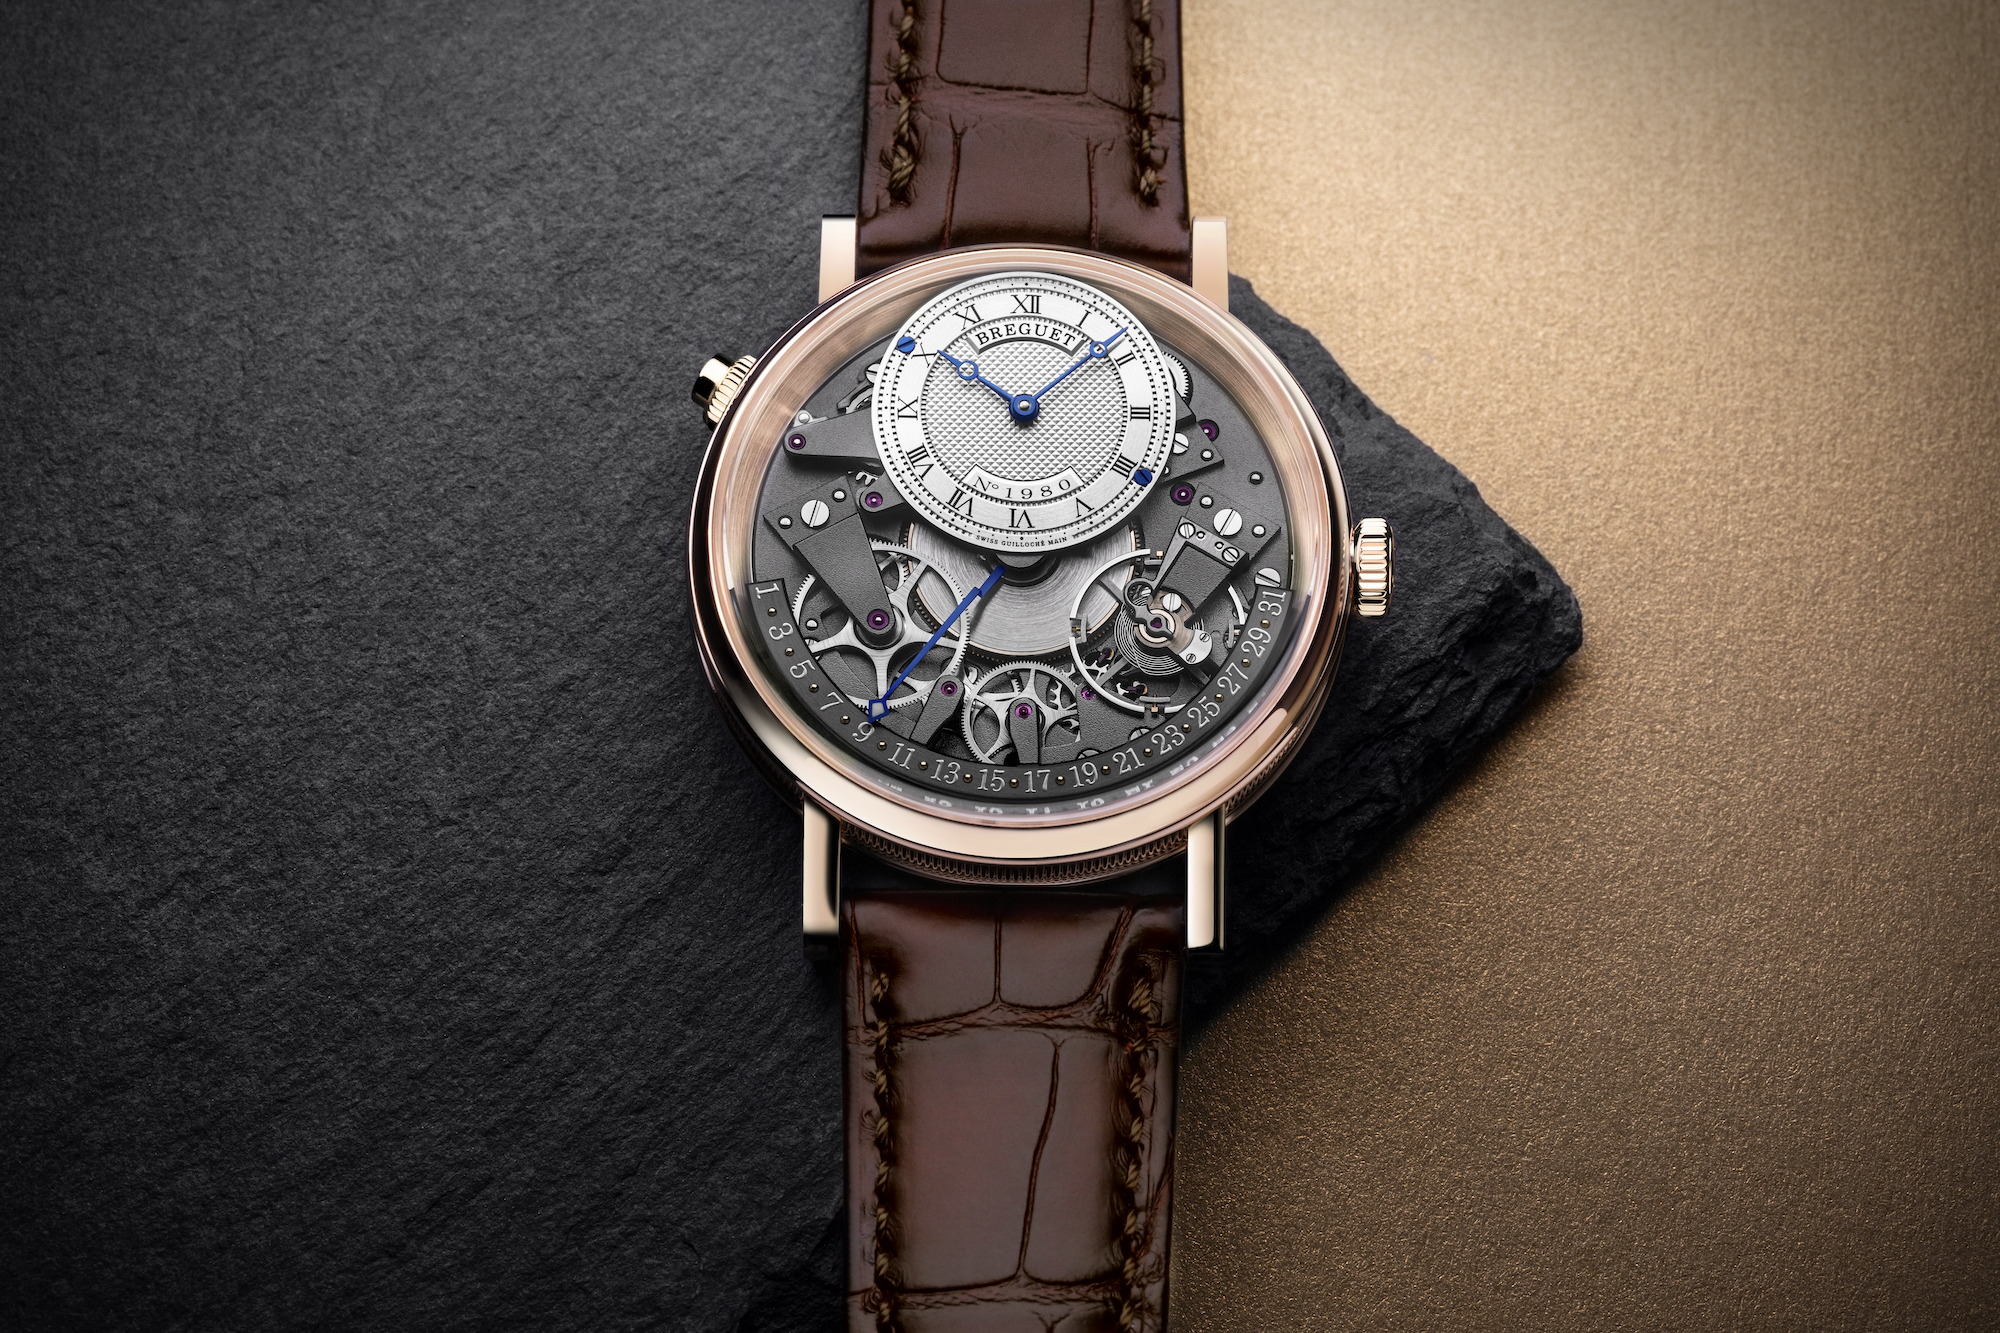 Breguet Tradition Quantieme Retrograde 7597BR_G1_9WU lifestyle